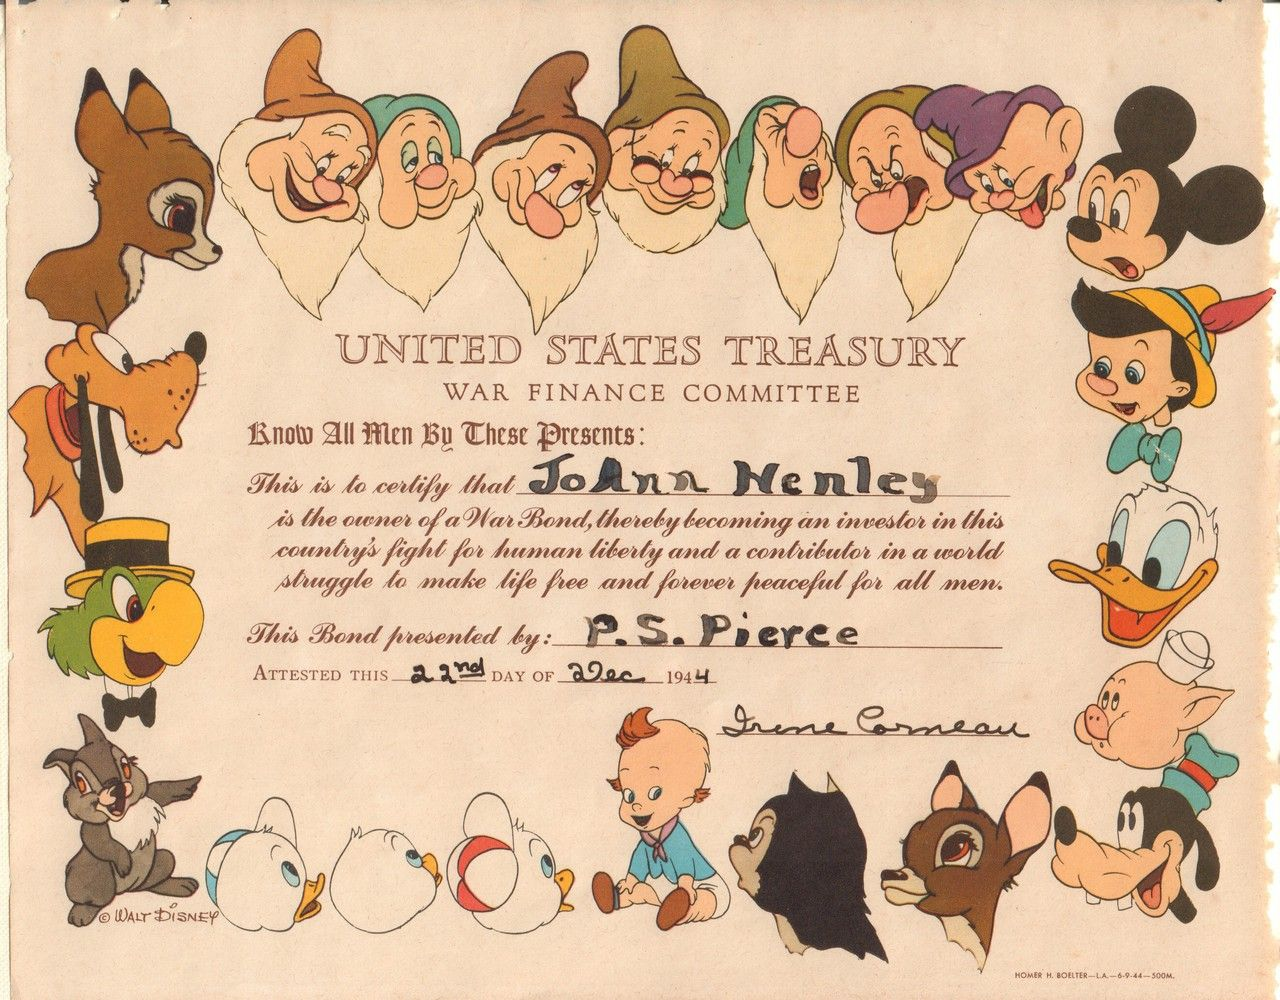 United states treasury war finance committee cert circa 1944 walt disney war bond certificate schwan a colorful certificate adorned with many popular disney characters 1betcityfo Choice Image